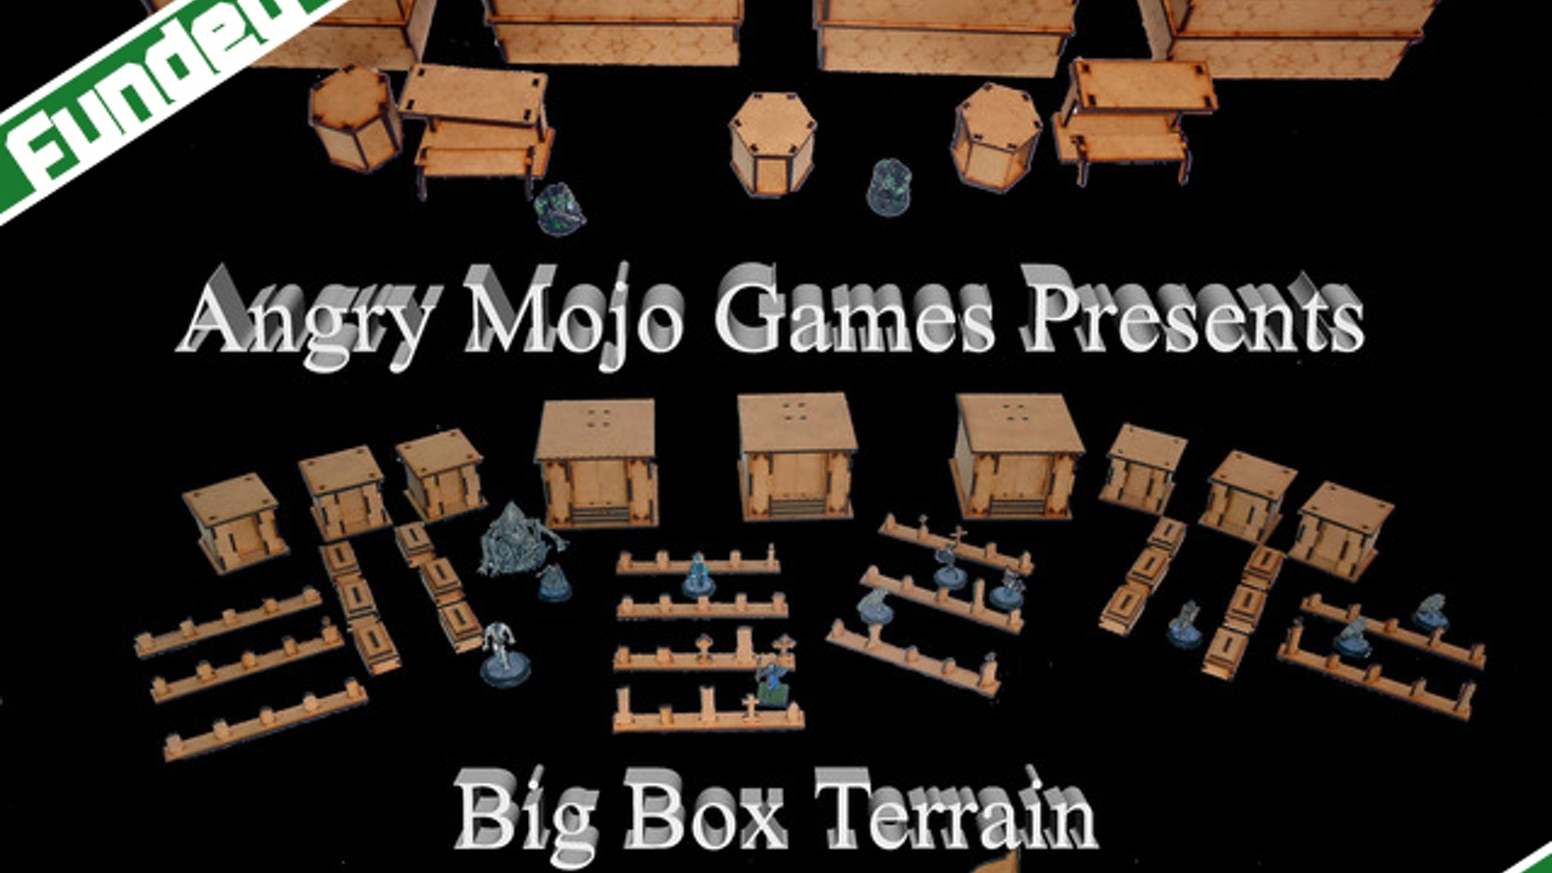 Big Box Terrain Angry Mojo Games And Terrain Lasercraft